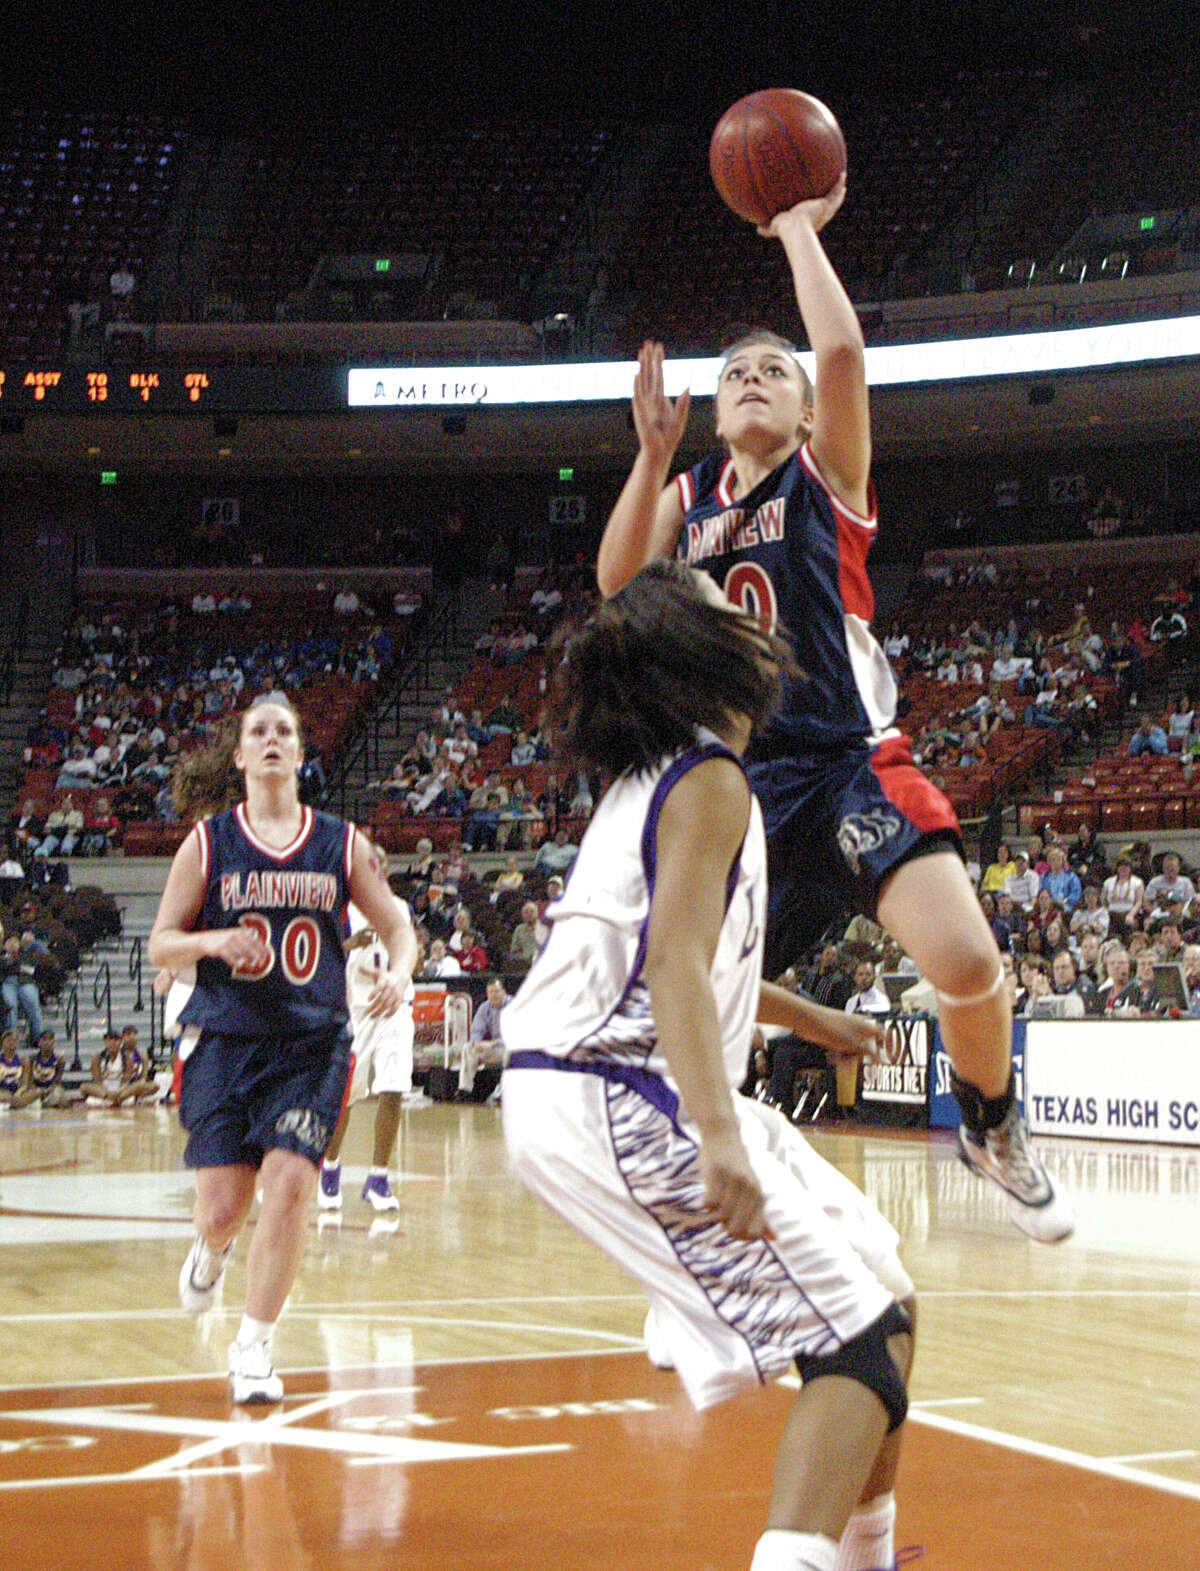 Addie Lees and the Lady Bulldogs couldn't match the success of previous teams, falling in the 2004 Class 4A state championship game against Dallas Lincoln.